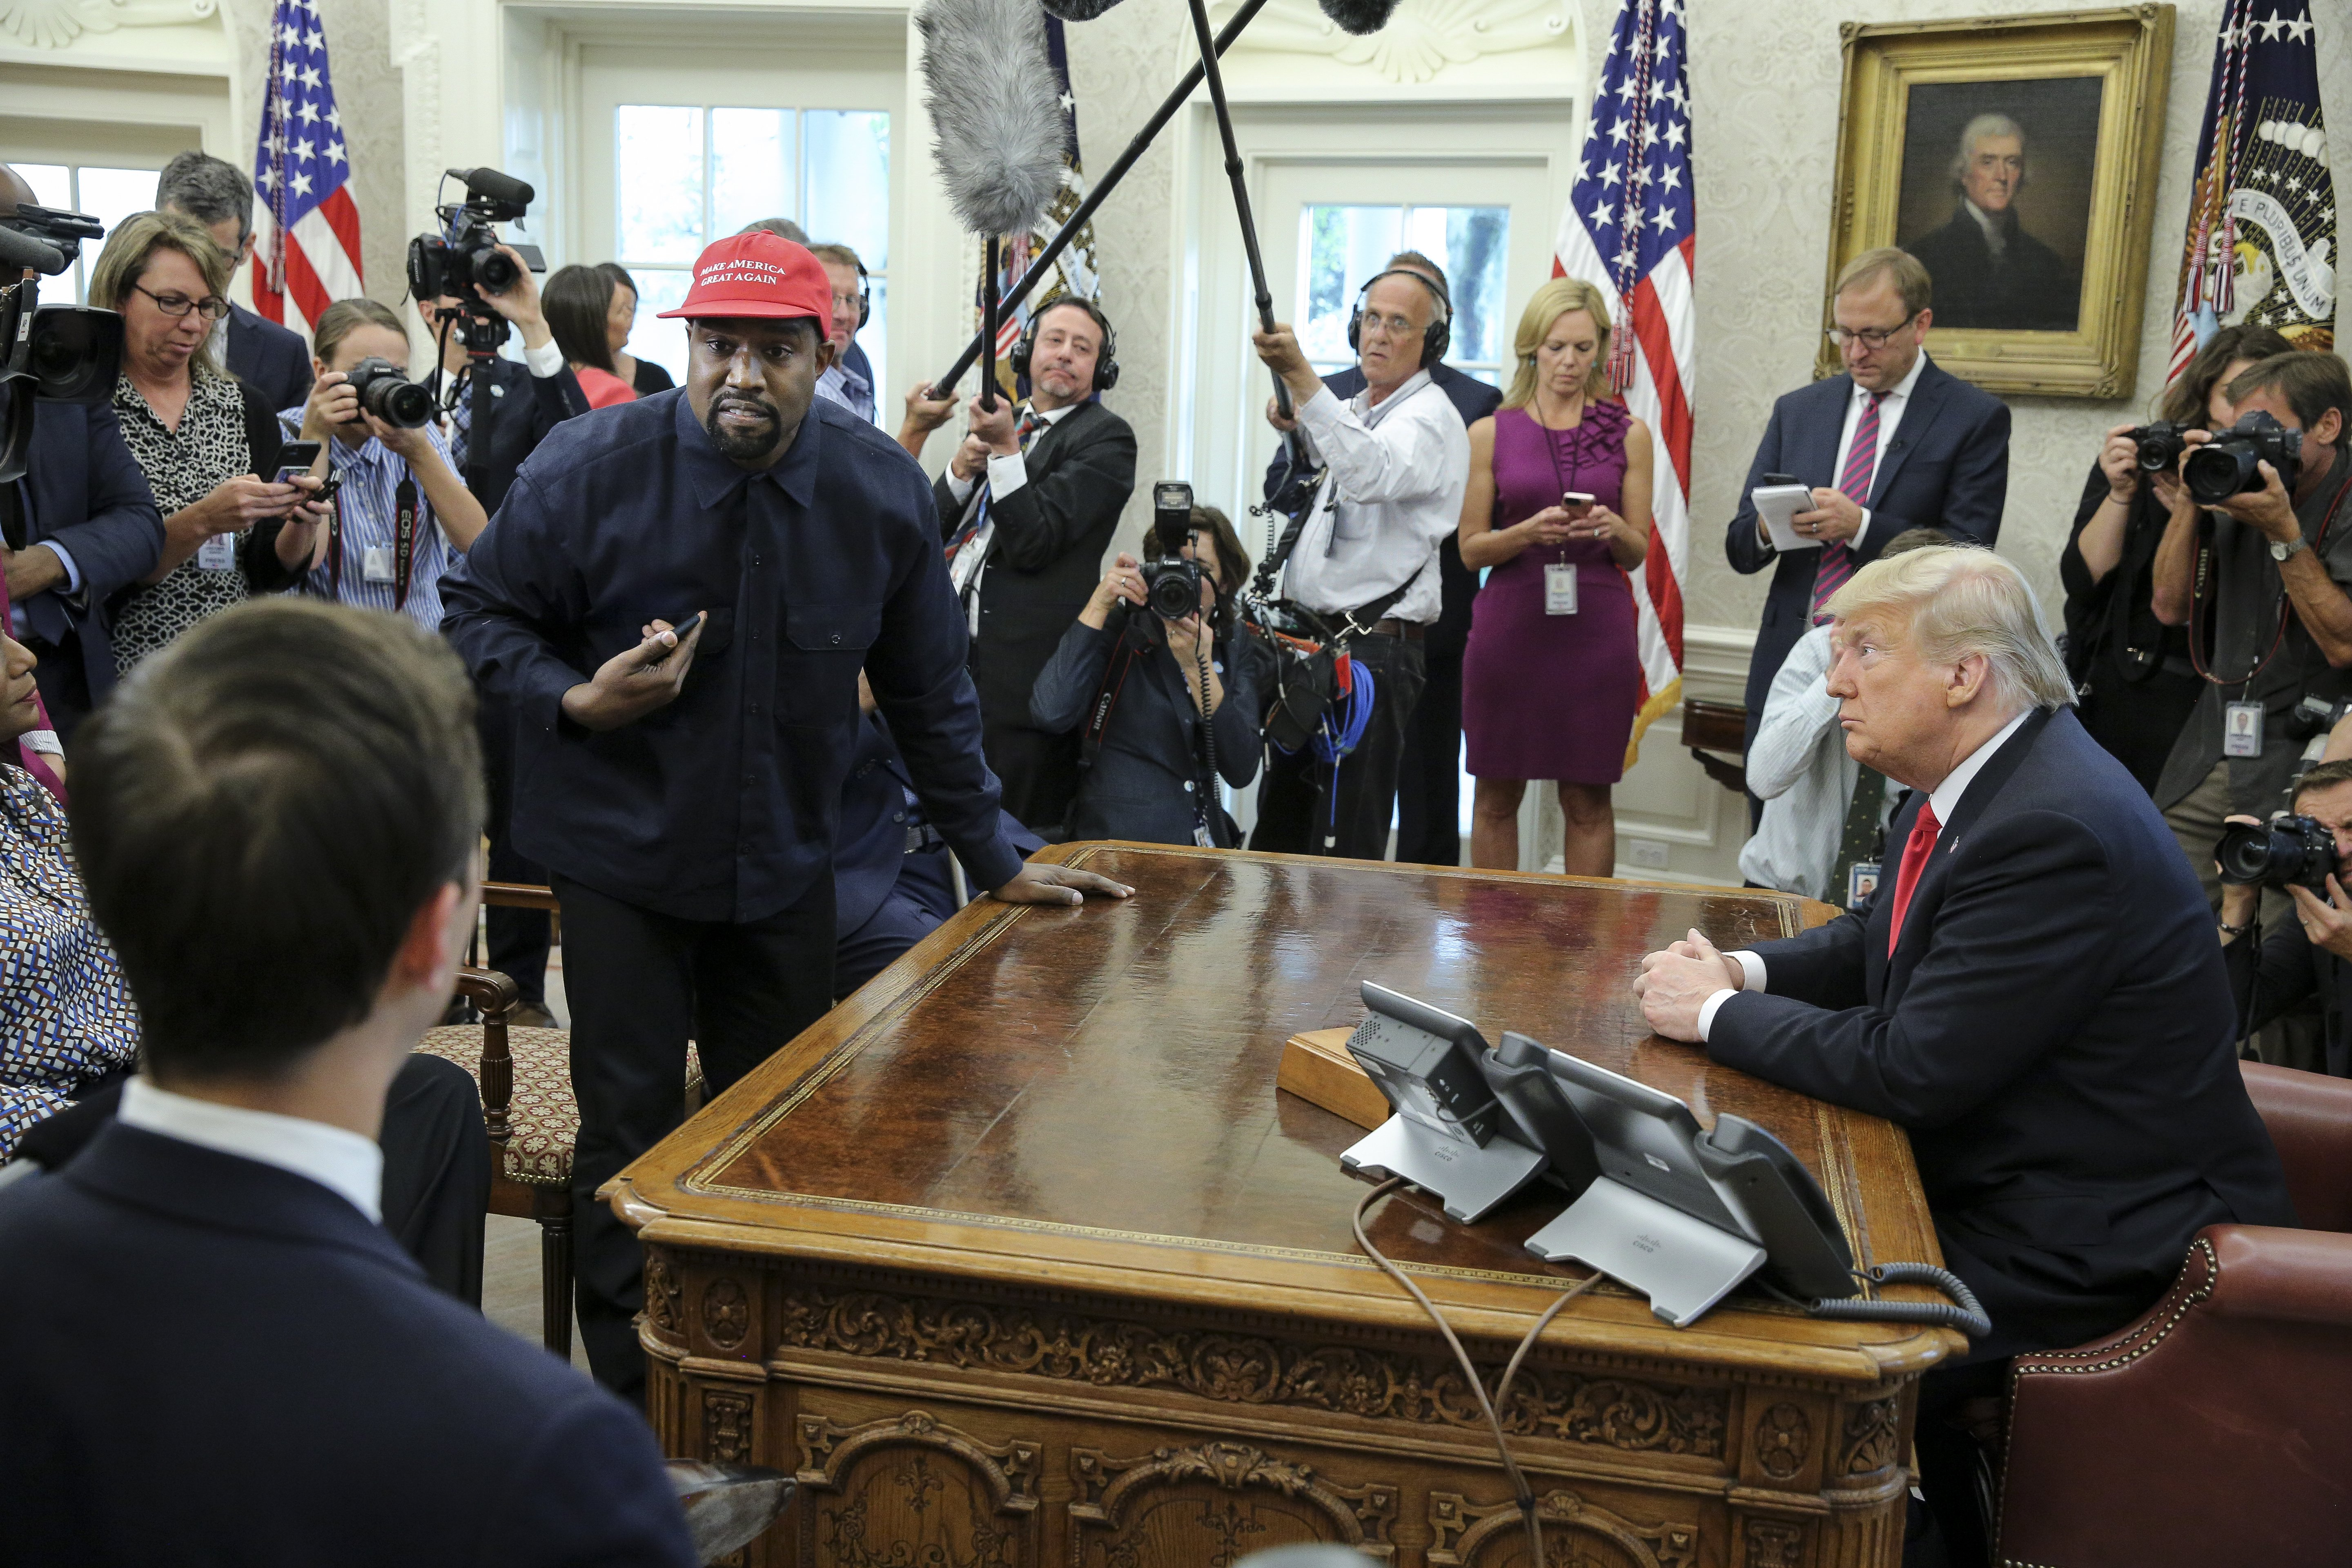 Kanye West meeting in the Oval Office with President Donald Trump in October 2018 | Photo: Getty Images